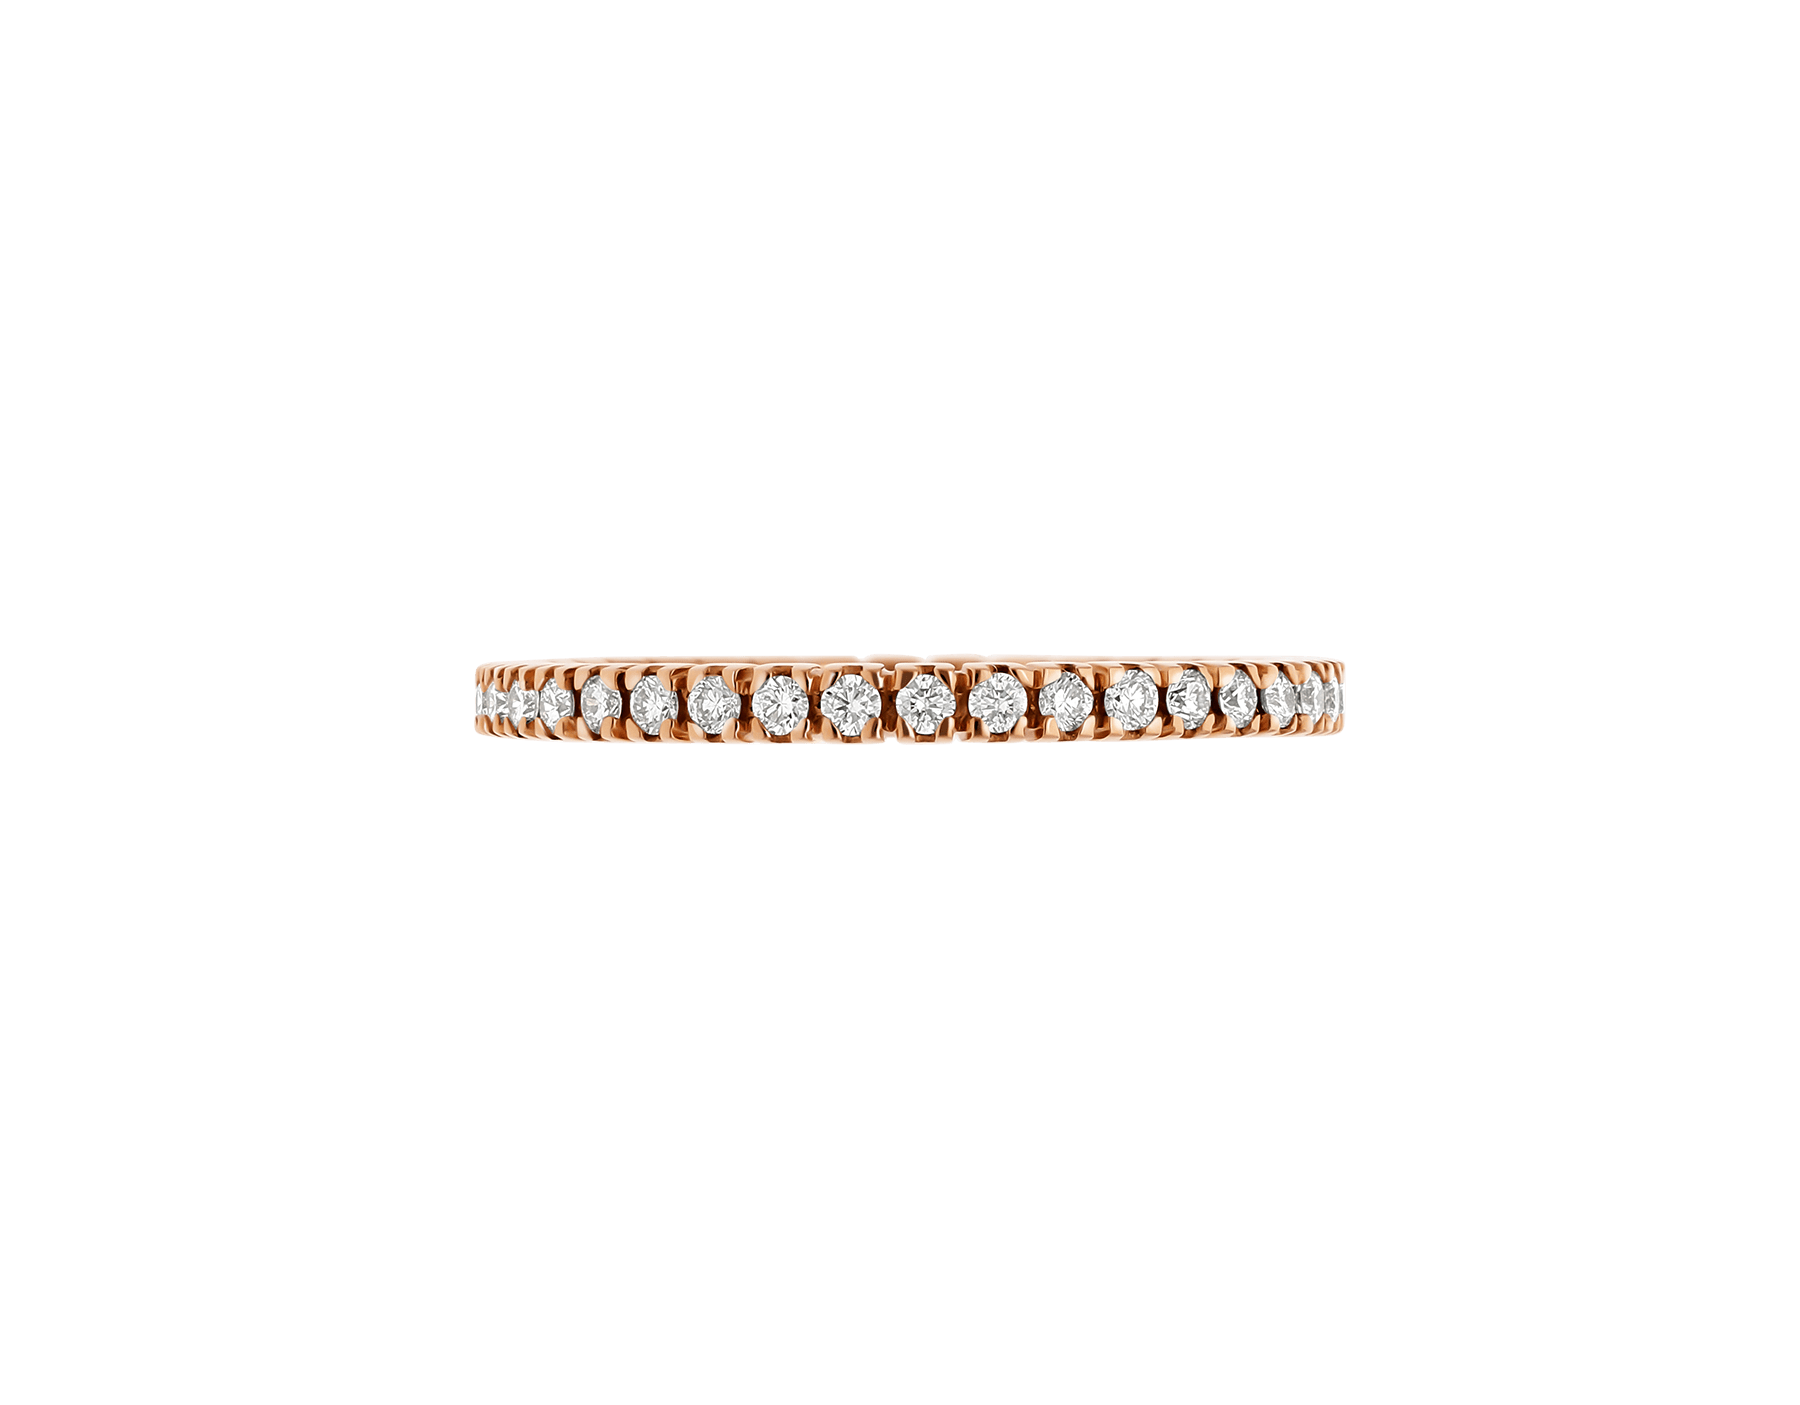 Eternity Band in thin size in 18 kt rose gold with demi tour round brilliant cut diamonds AN857561 image 2